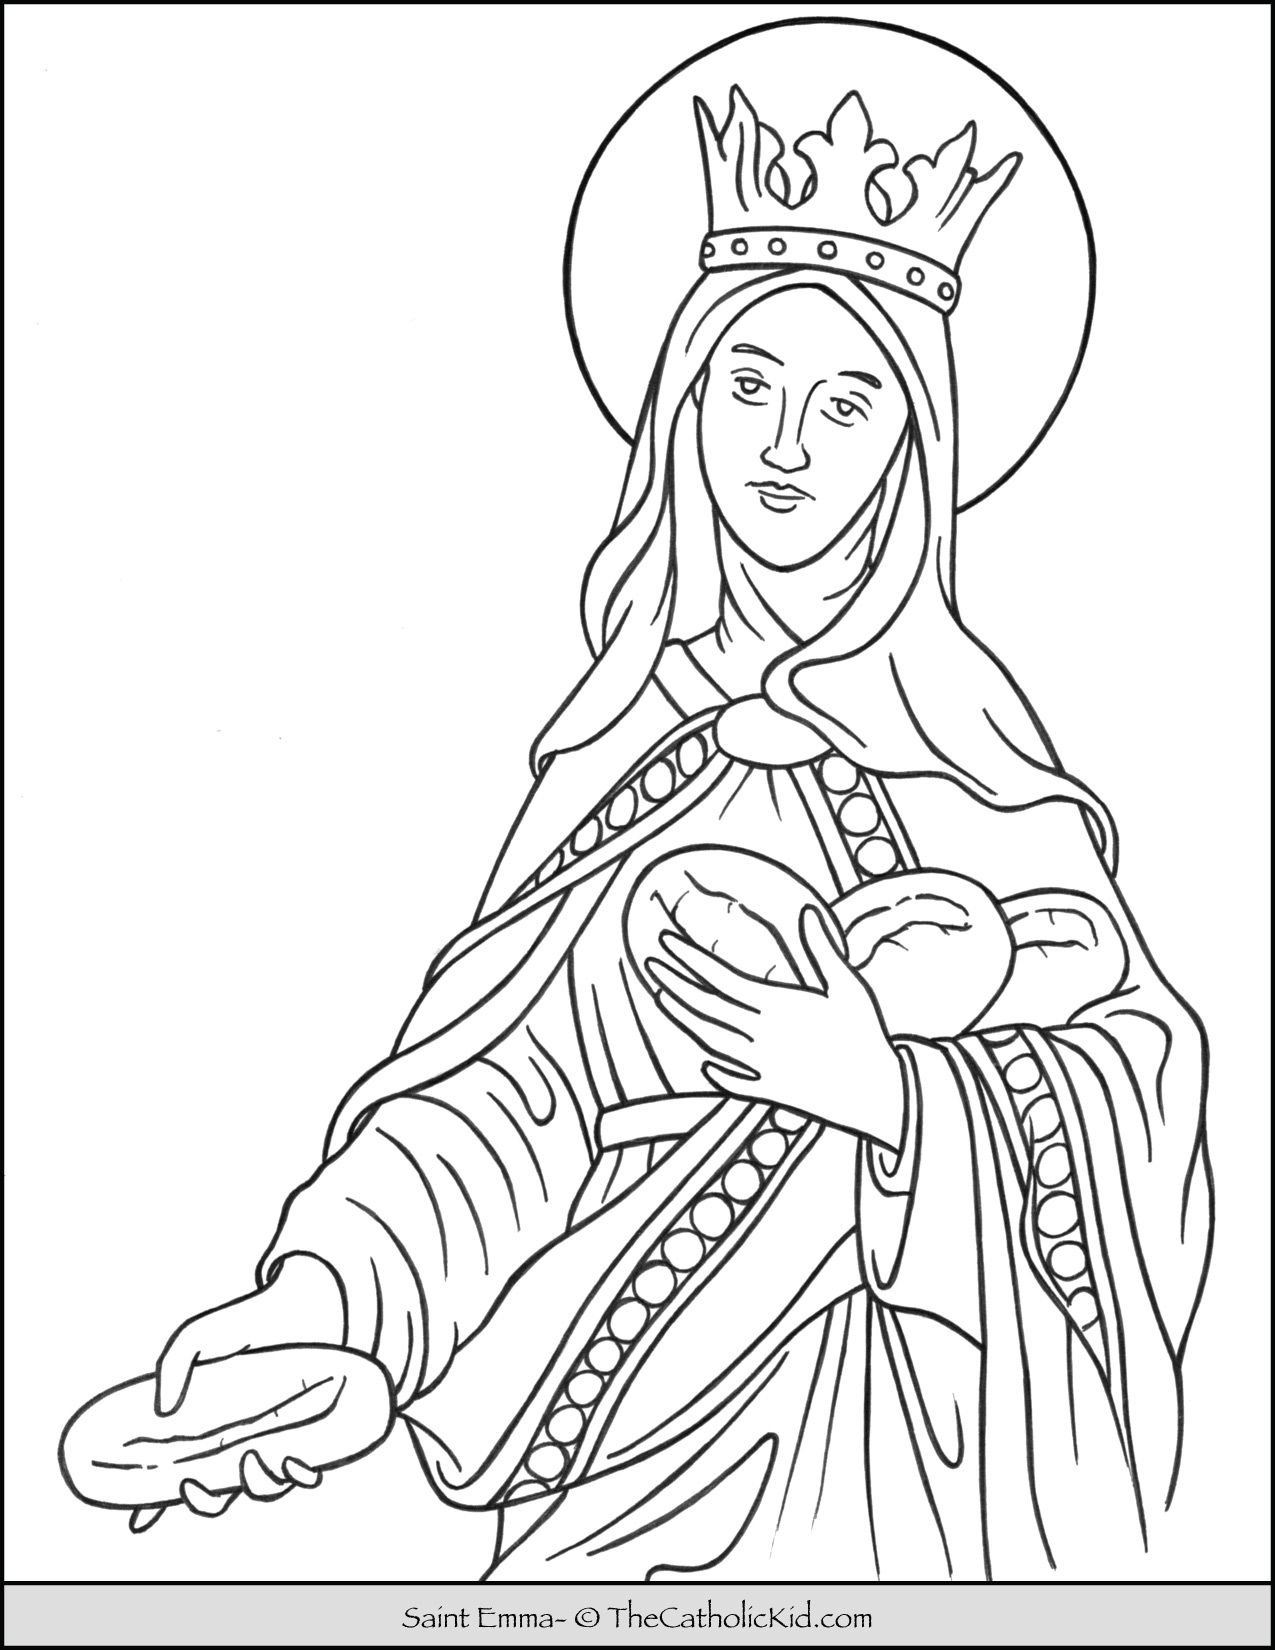 Saint Emma Coloring Page Thecatholickid Com Coloring Pages